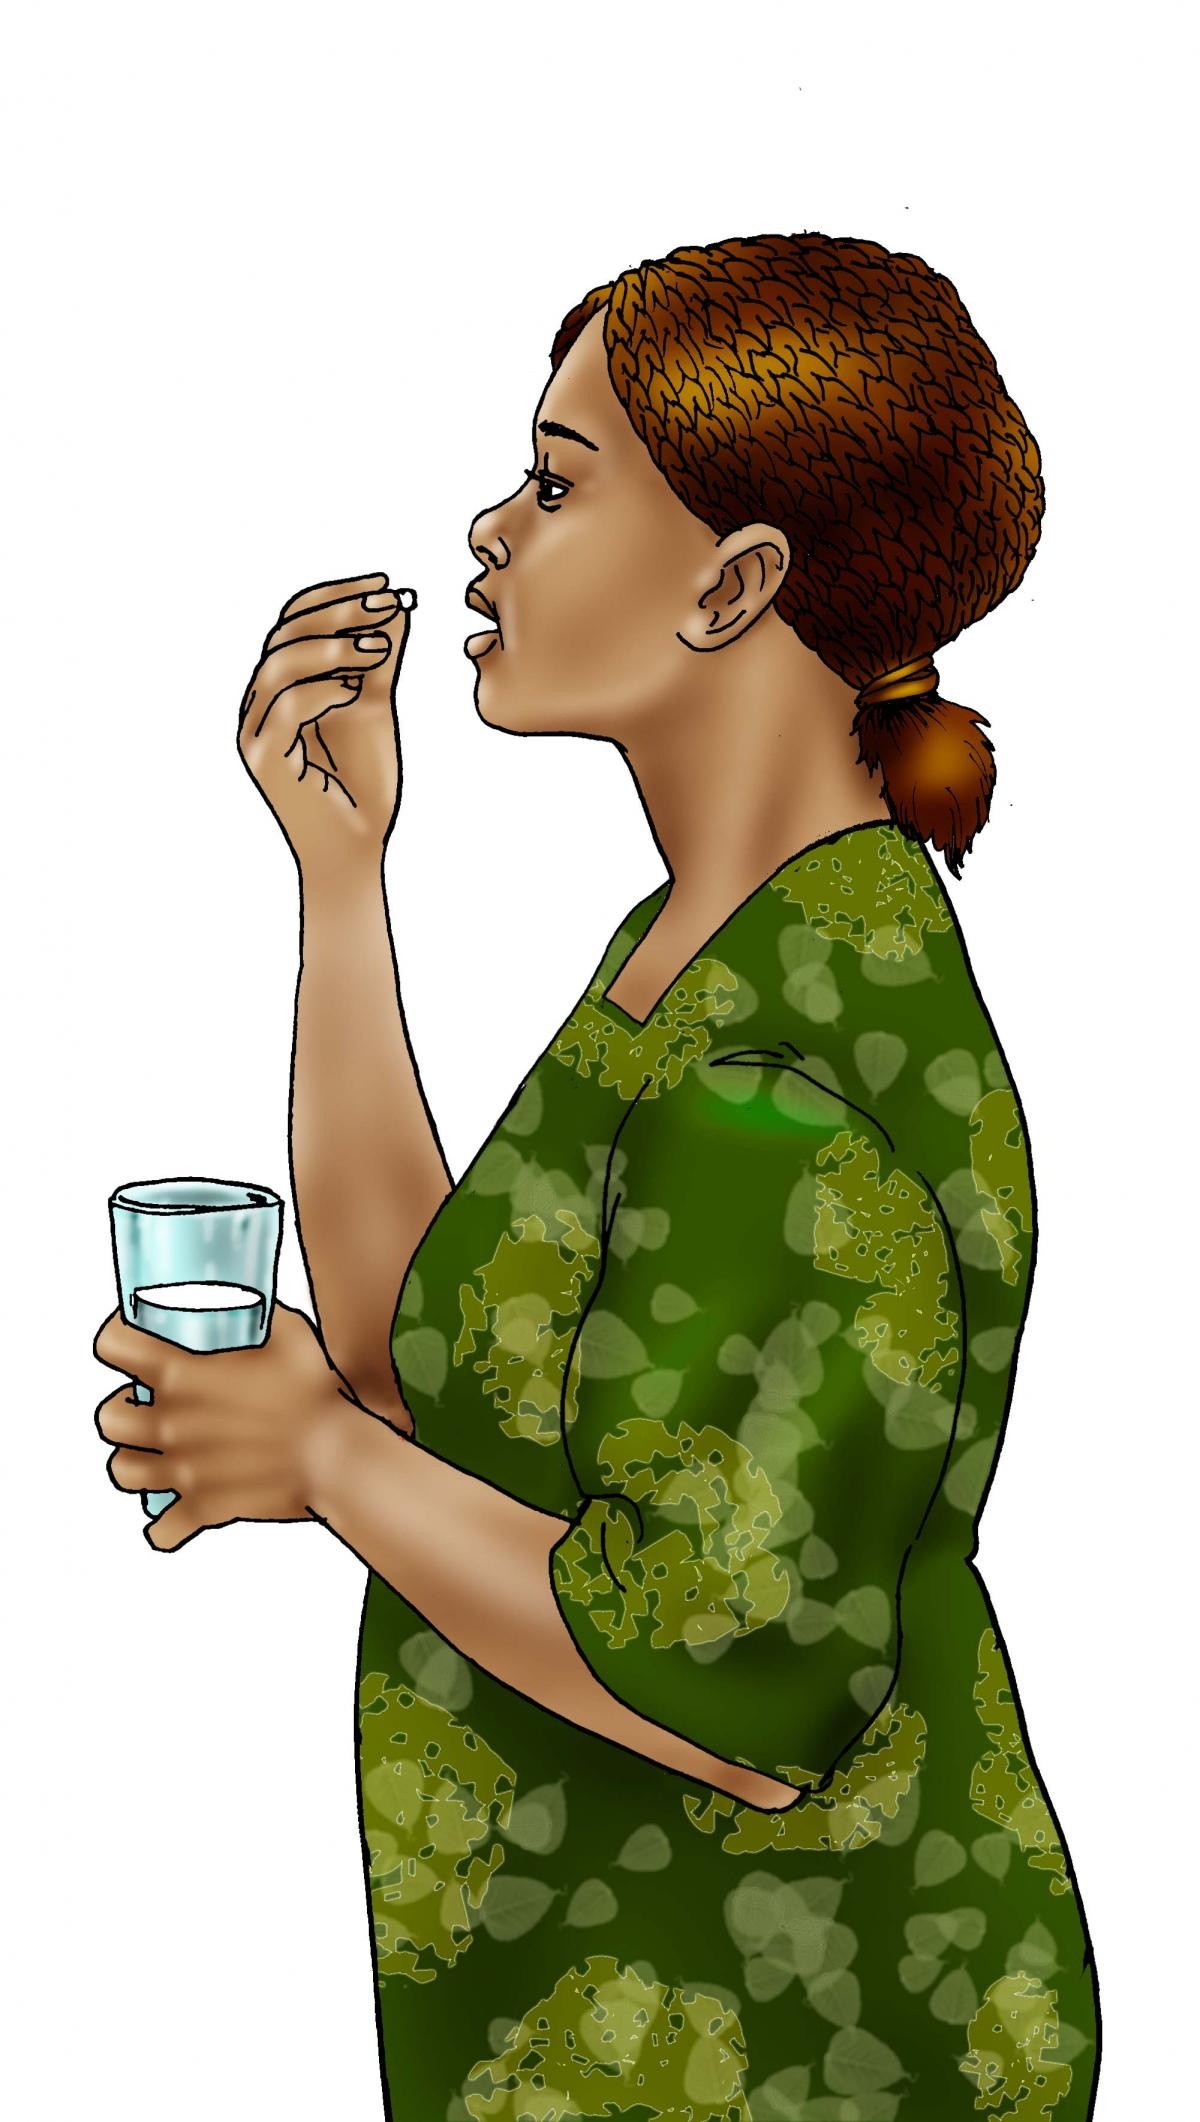 Maternal Health - Mother taking medicine - ARVs - 02BB - Non-country specific